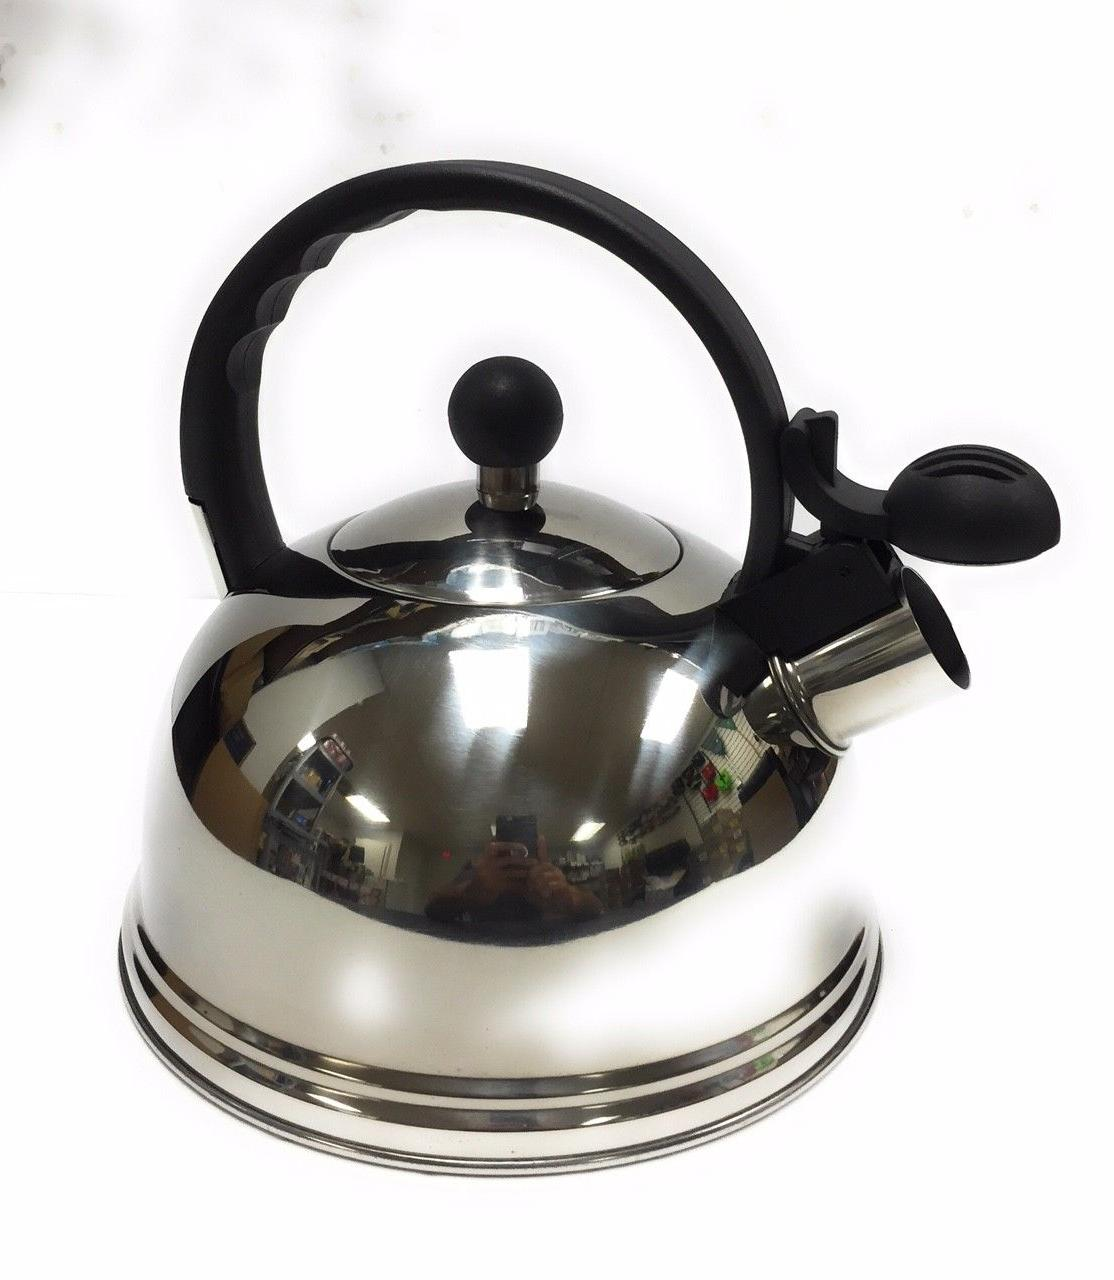 New Quality Stainless Steel Ware Hot Water Whistling